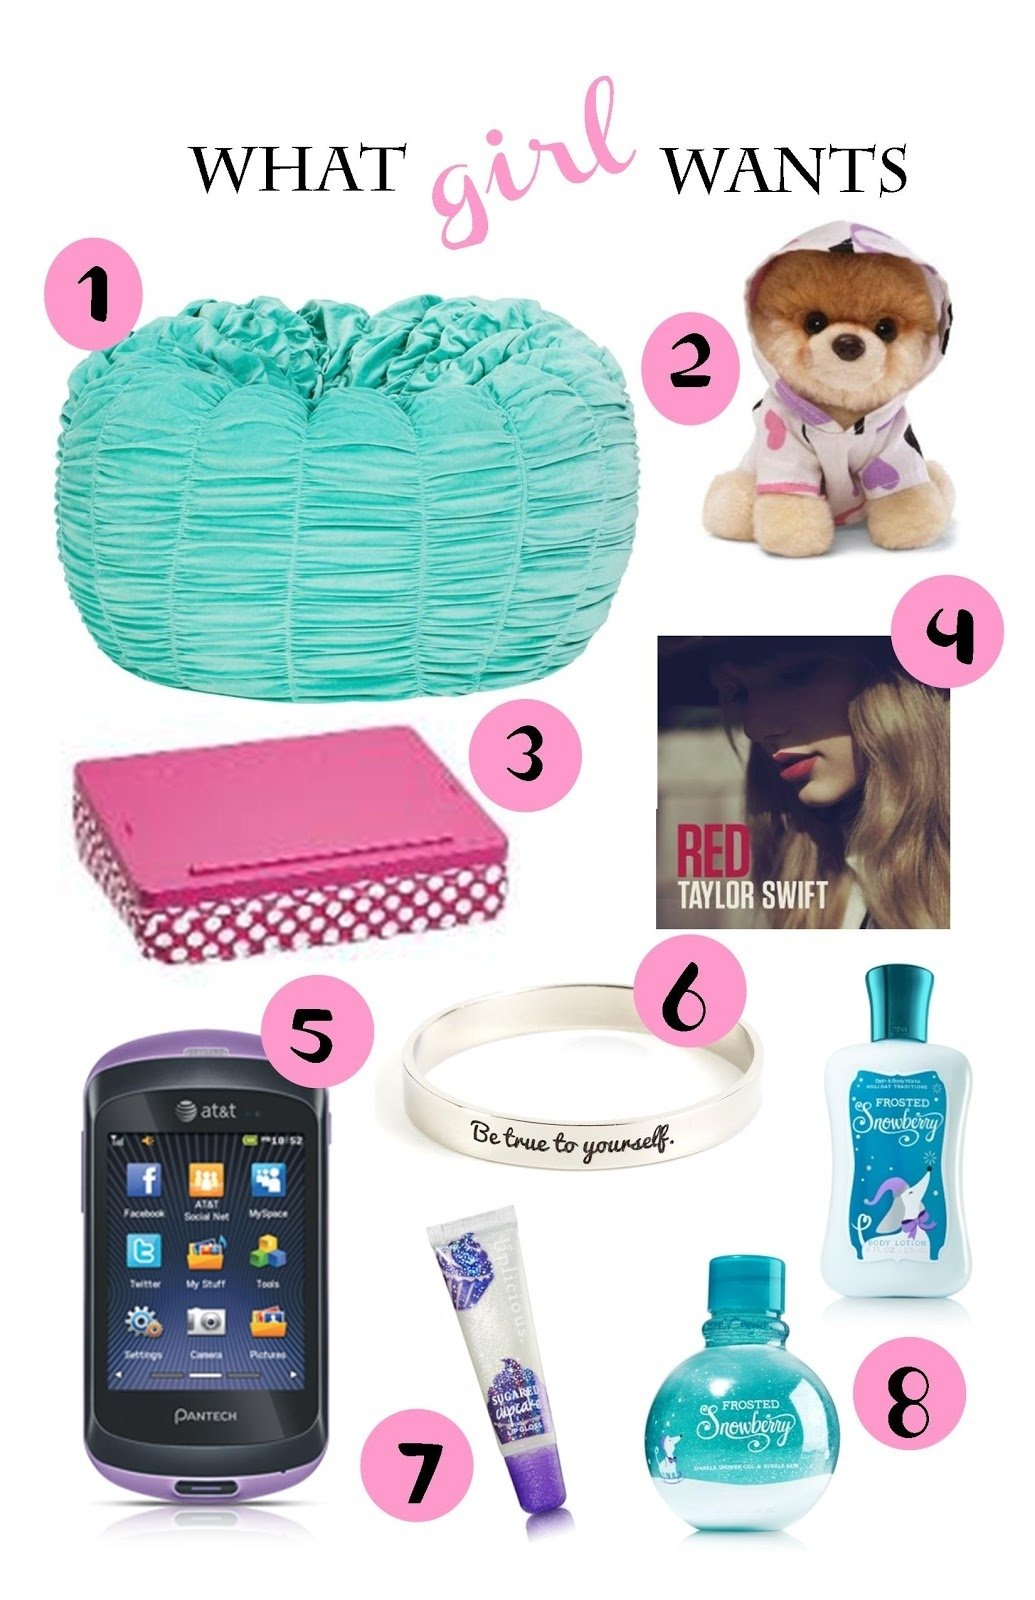 10 Attractive Christmas Ideas For A Teenage Girl icing designs gift ideas for tween girls 10 2020